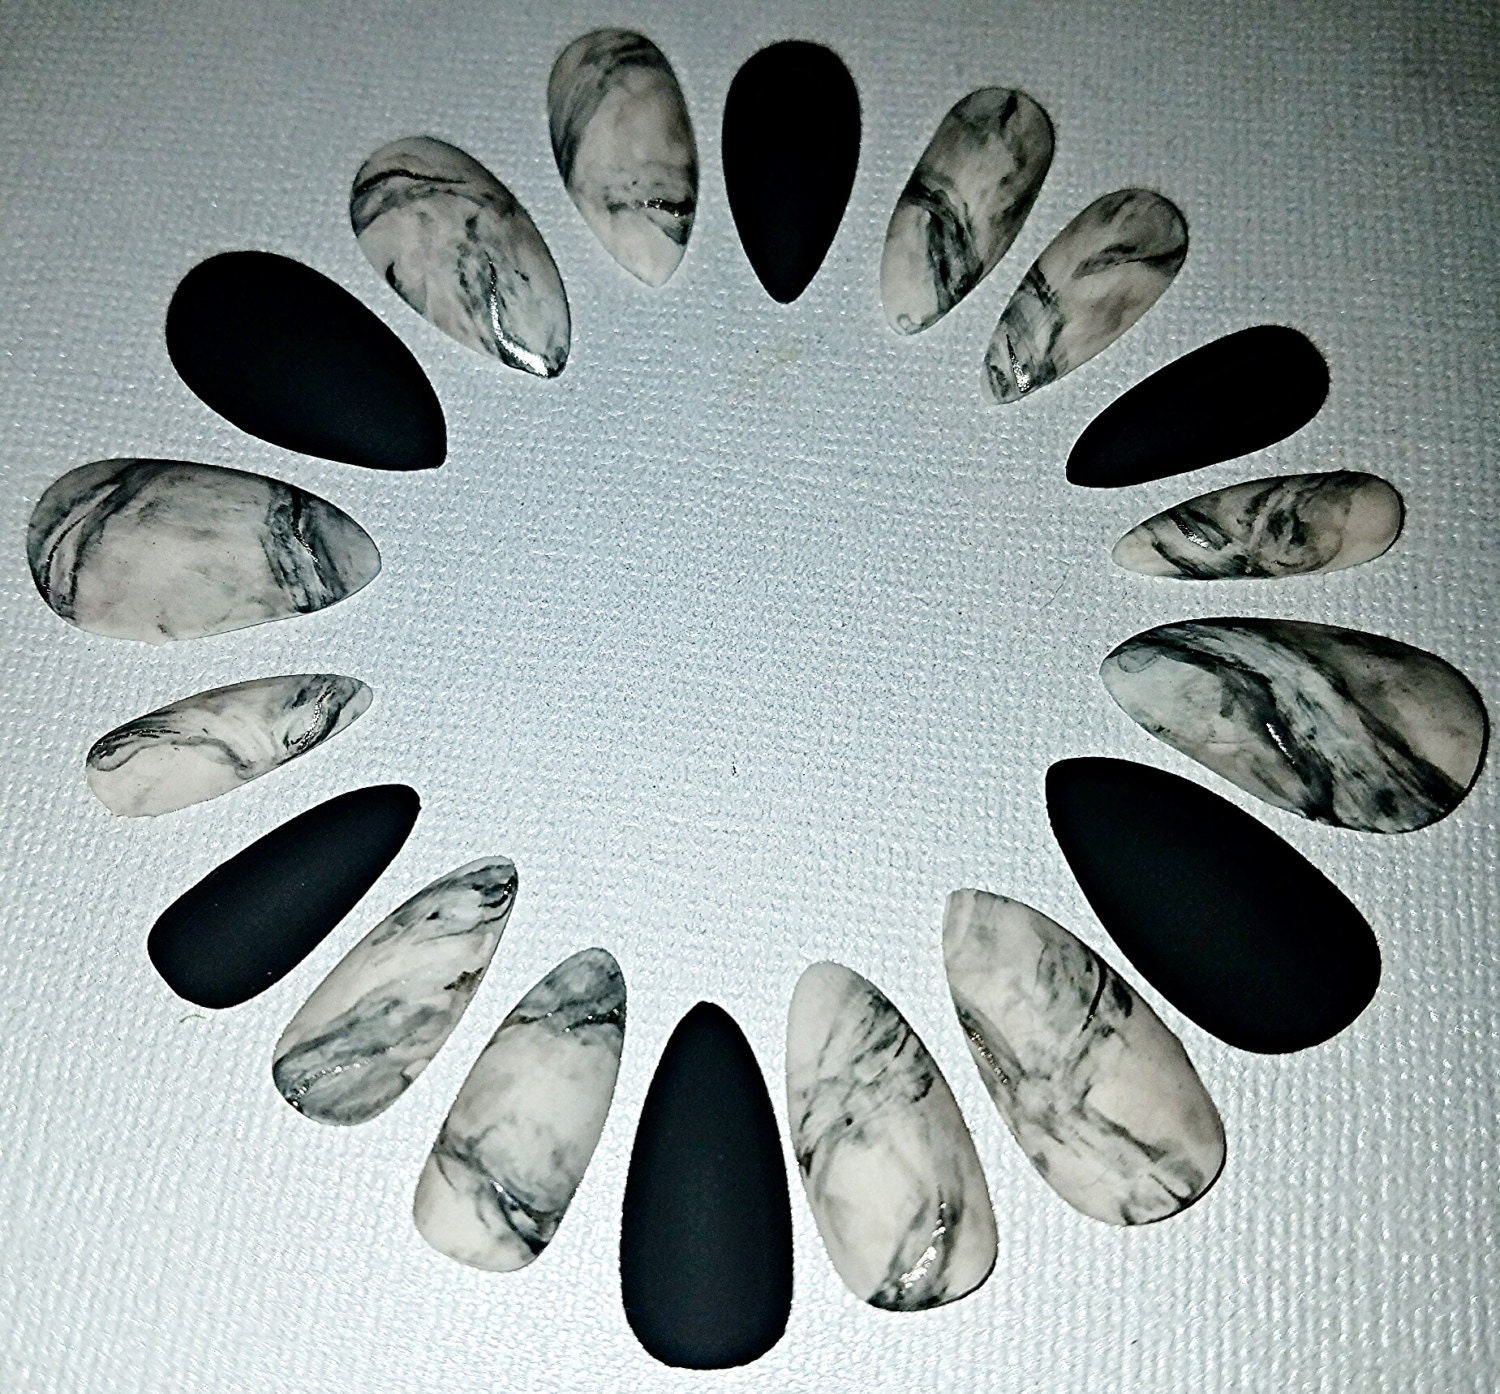 Marble Nail Art Stiletto: Marble Stiletto Nails Press On Nails Glue On Nails Acrylic